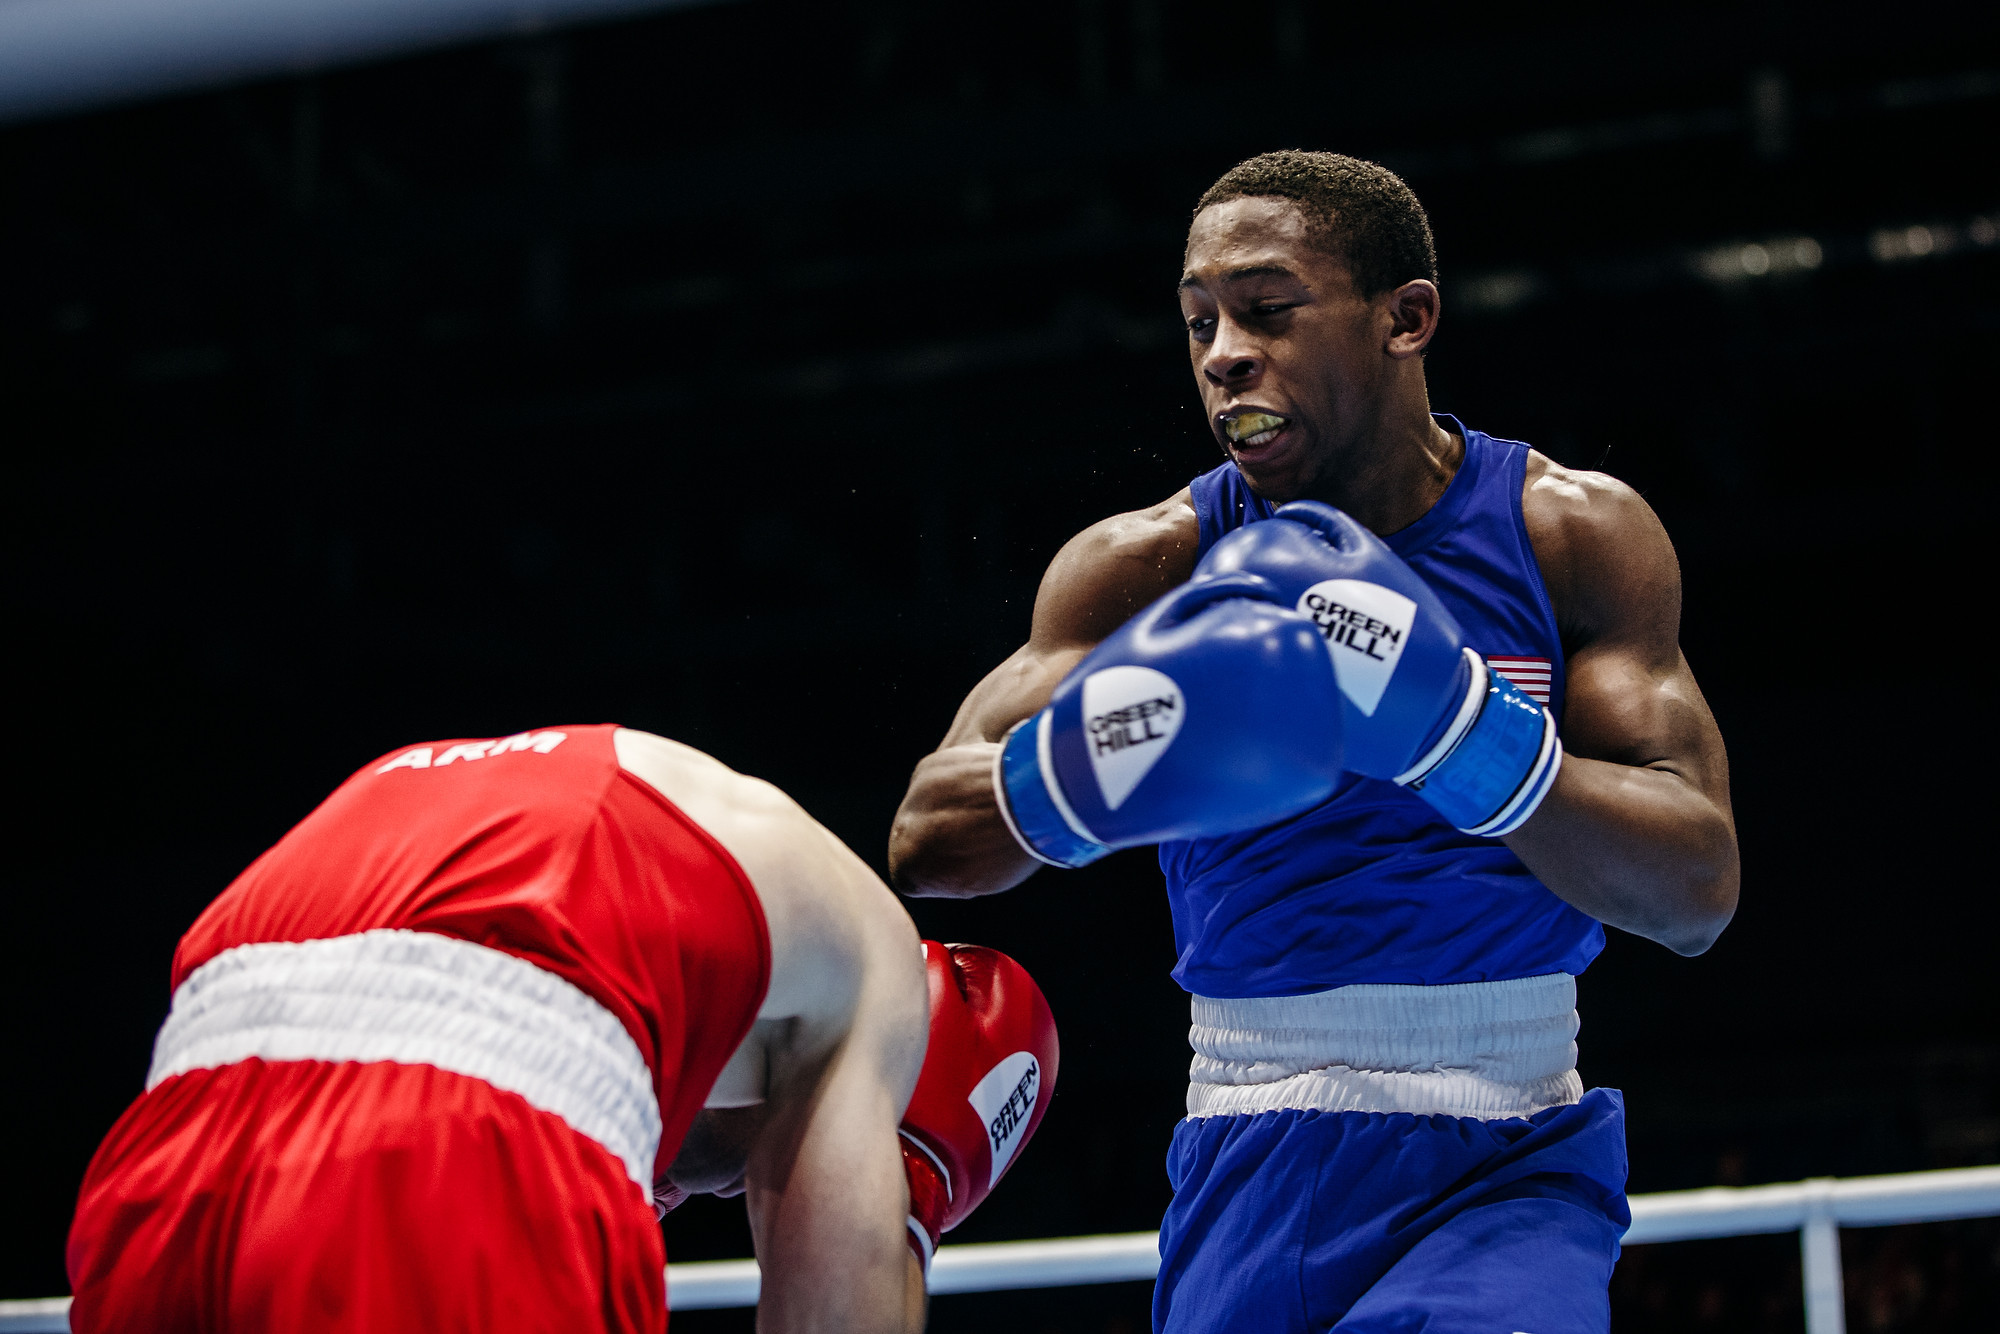 Davis stuns two-time European champion Bachkov to reach light welterweight final at AIBA Men's World Championships